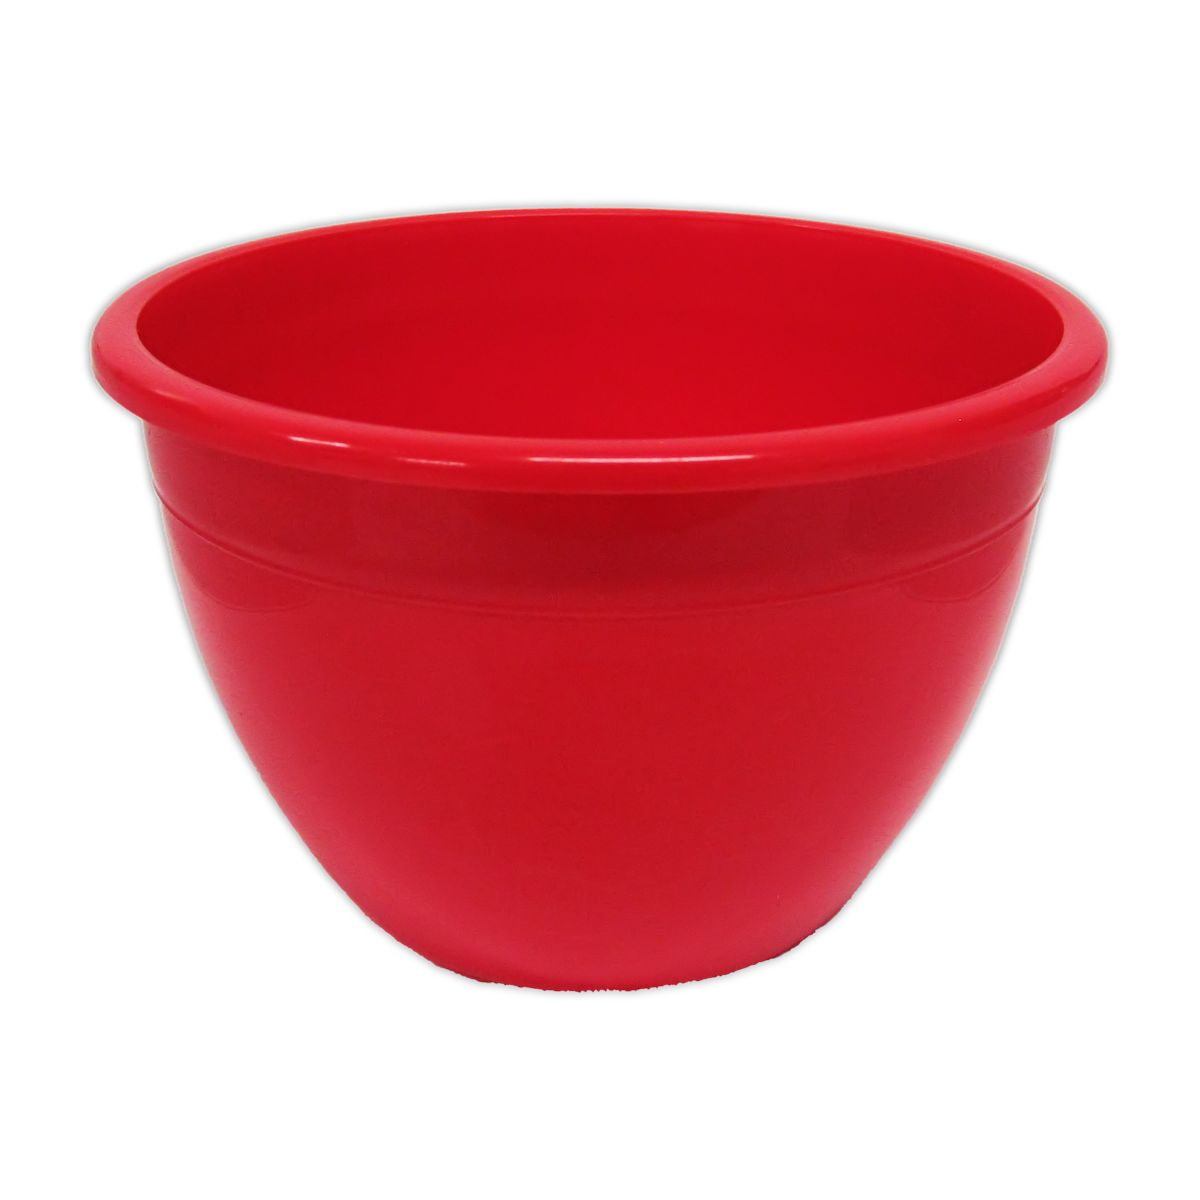 PUDB2225 - 2lb Red Pudding Bowl x 25